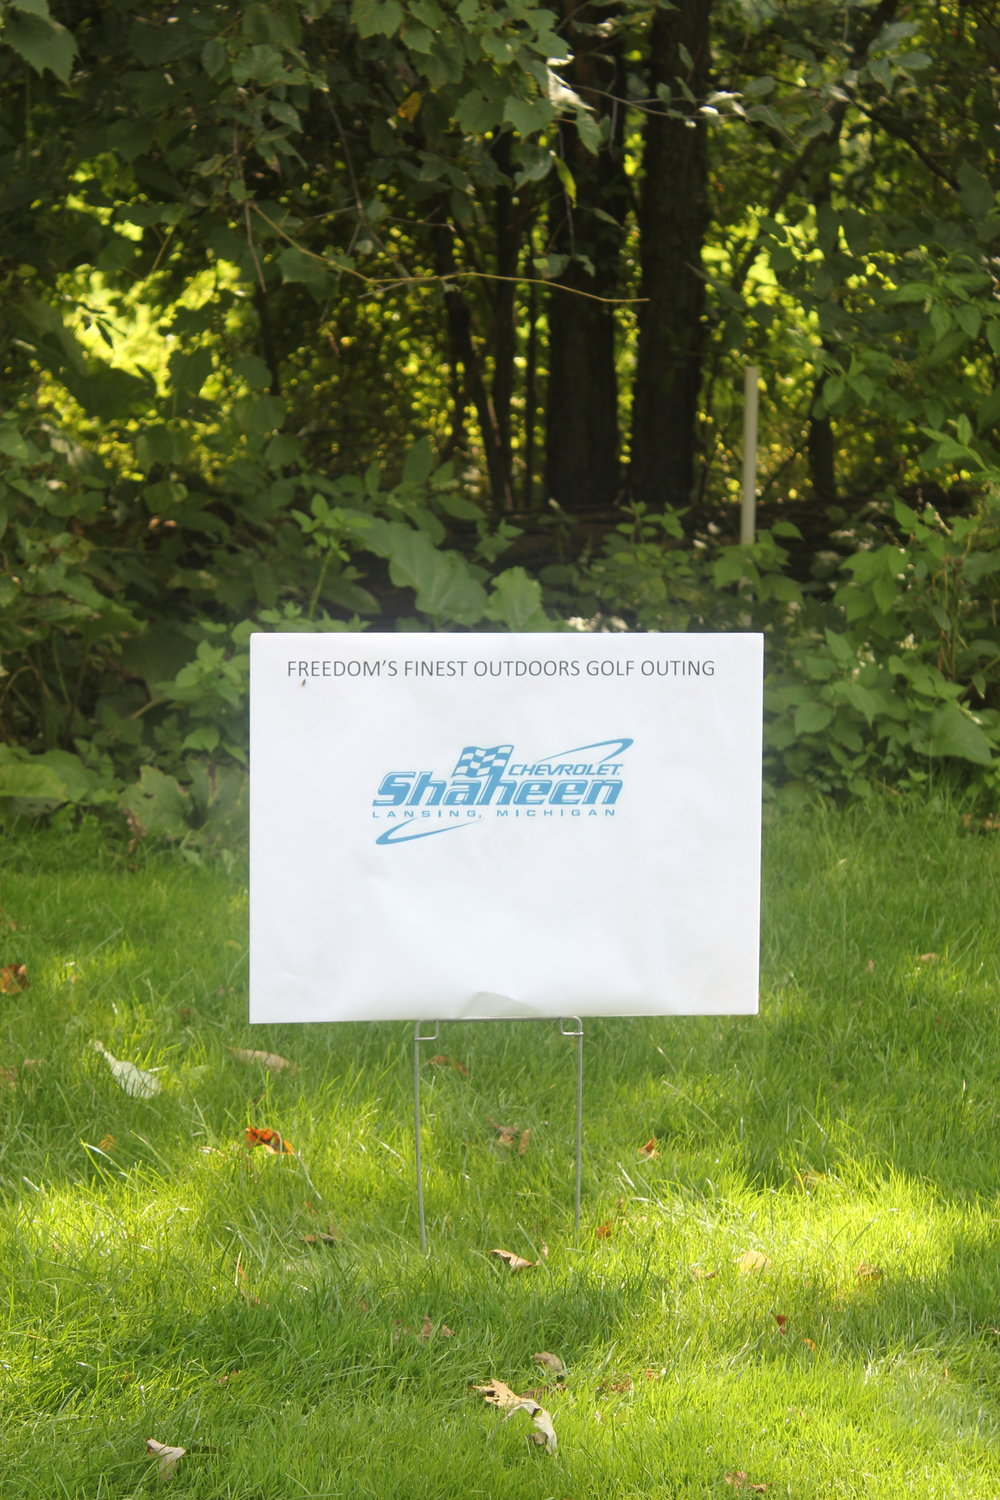 IMG_2195 Shaheen Sponsore Sign FFO Golf Outing 2015 copy.JPG